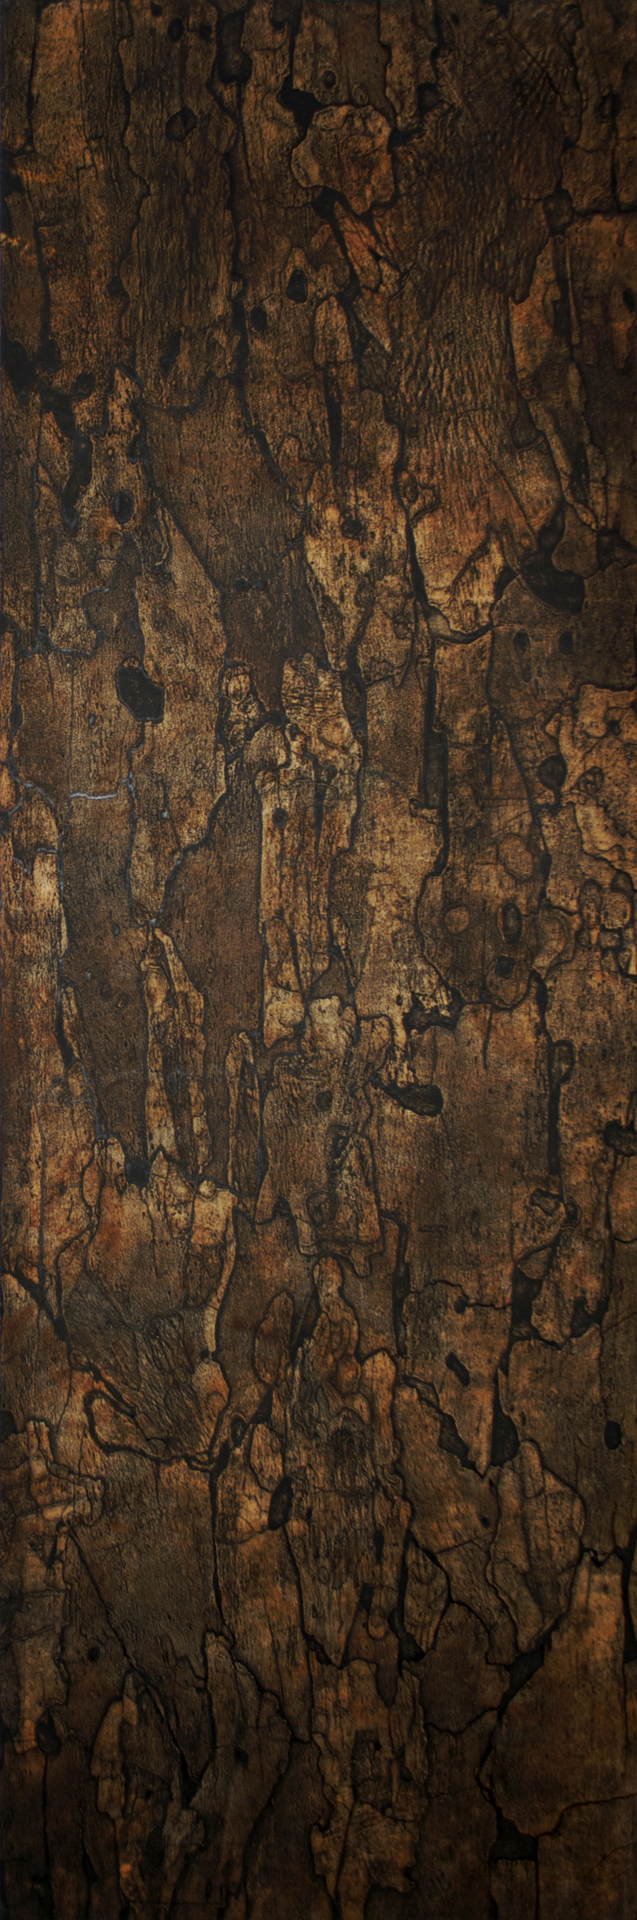 "Sycamore II – 70"" x 23"" Bark Intaglio and Rust Monoprints on Suzuki"